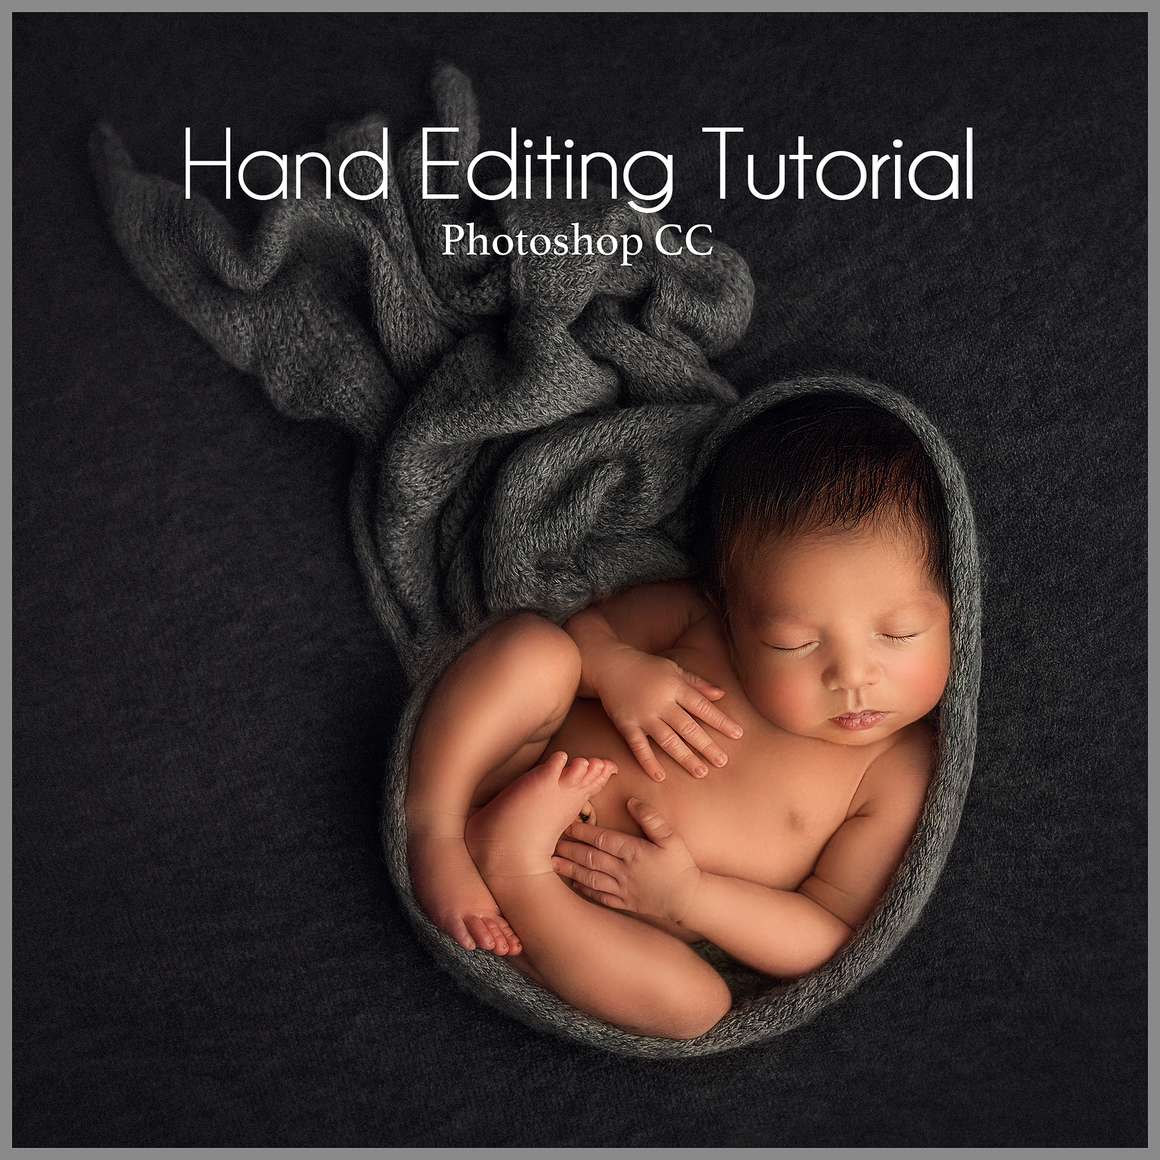 Grey on Beanbag Newborn Editing Tutorial | Photoshop Class